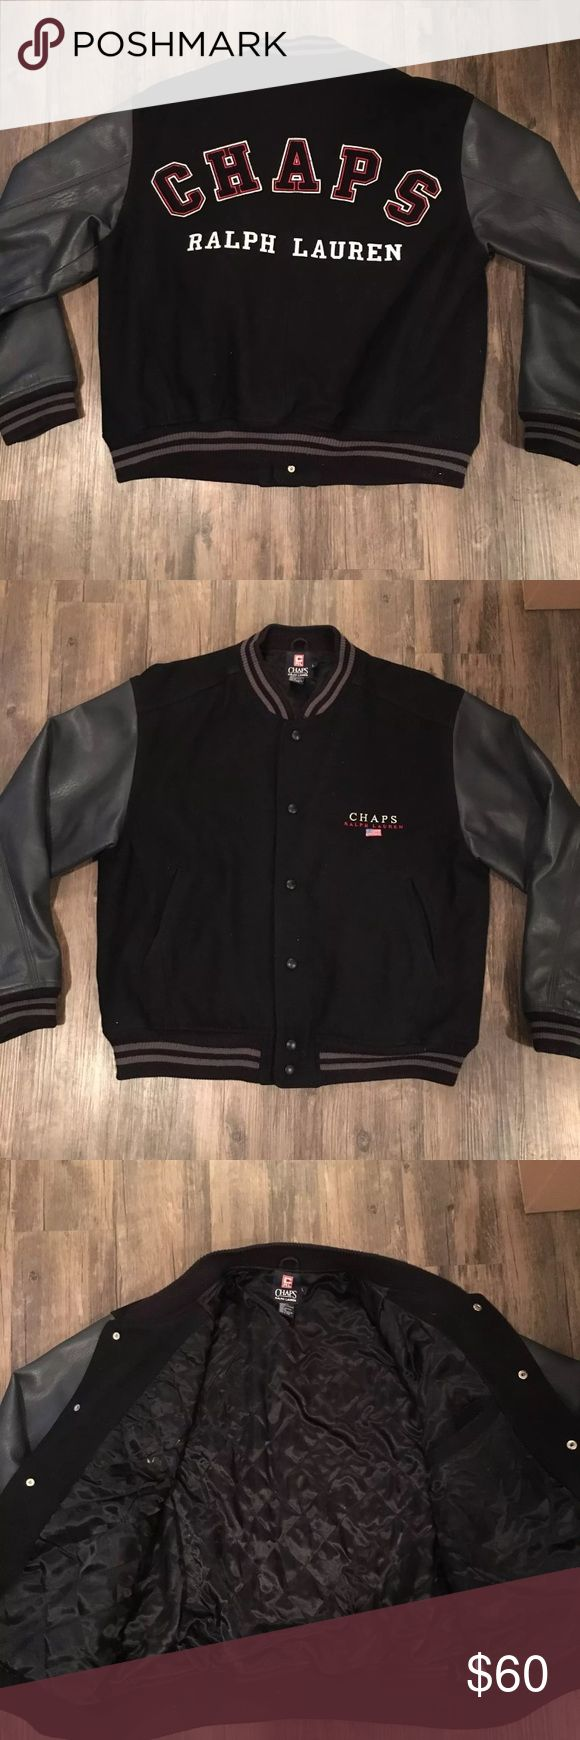 Vintage men's Chaps Ralph Lauren varsity jacket Vintage men's chaps Ralph Lauren Spellout jacket, size large, great condition only flaw is two small patch ups on left arm as shown, offers welcome. Ralph Lauren Jackets & Coats Bomber & Varsity